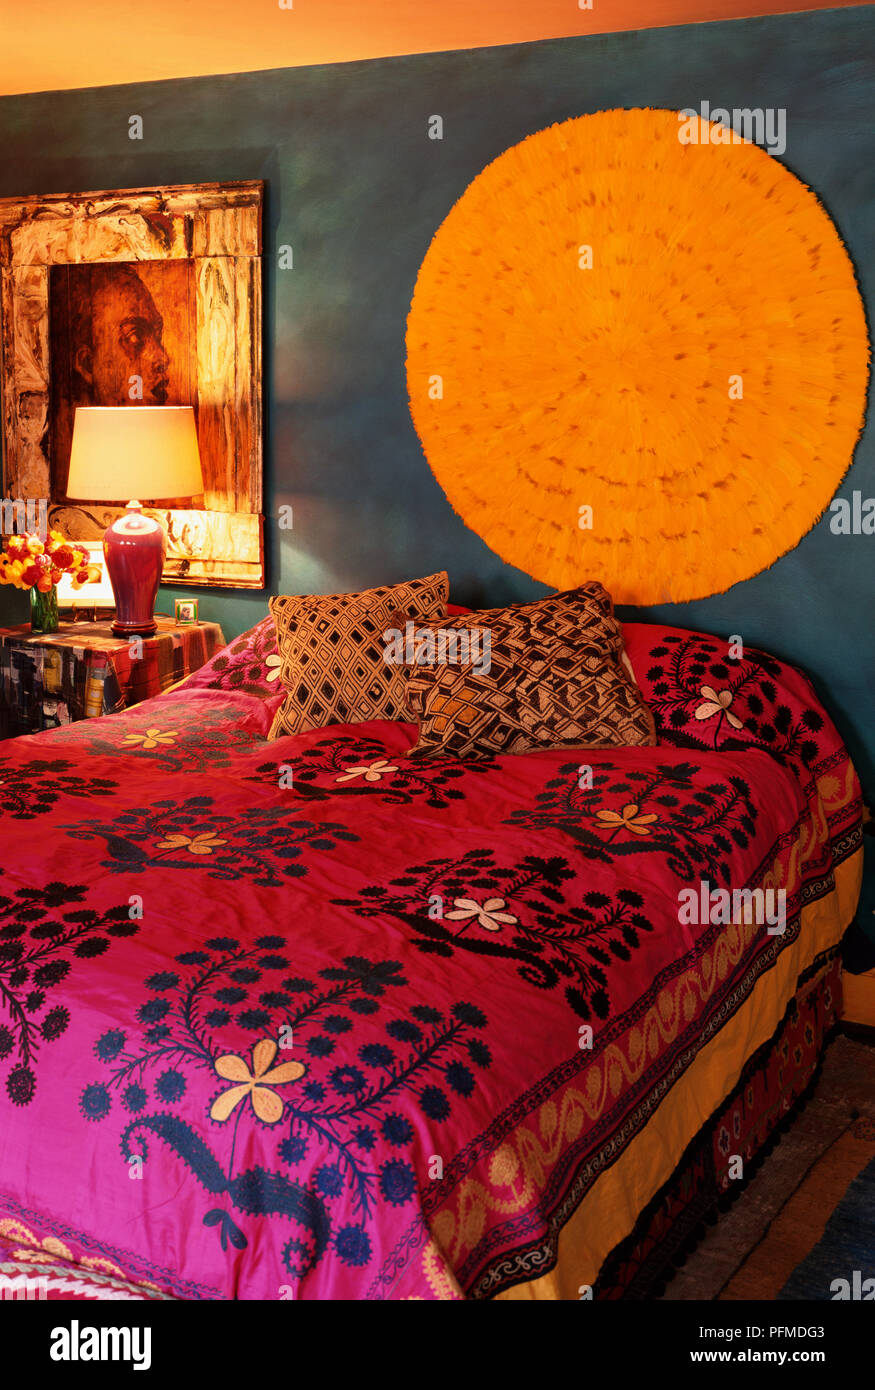 Indian Style Themed Bedroom With Pink And Red Patterned Bed